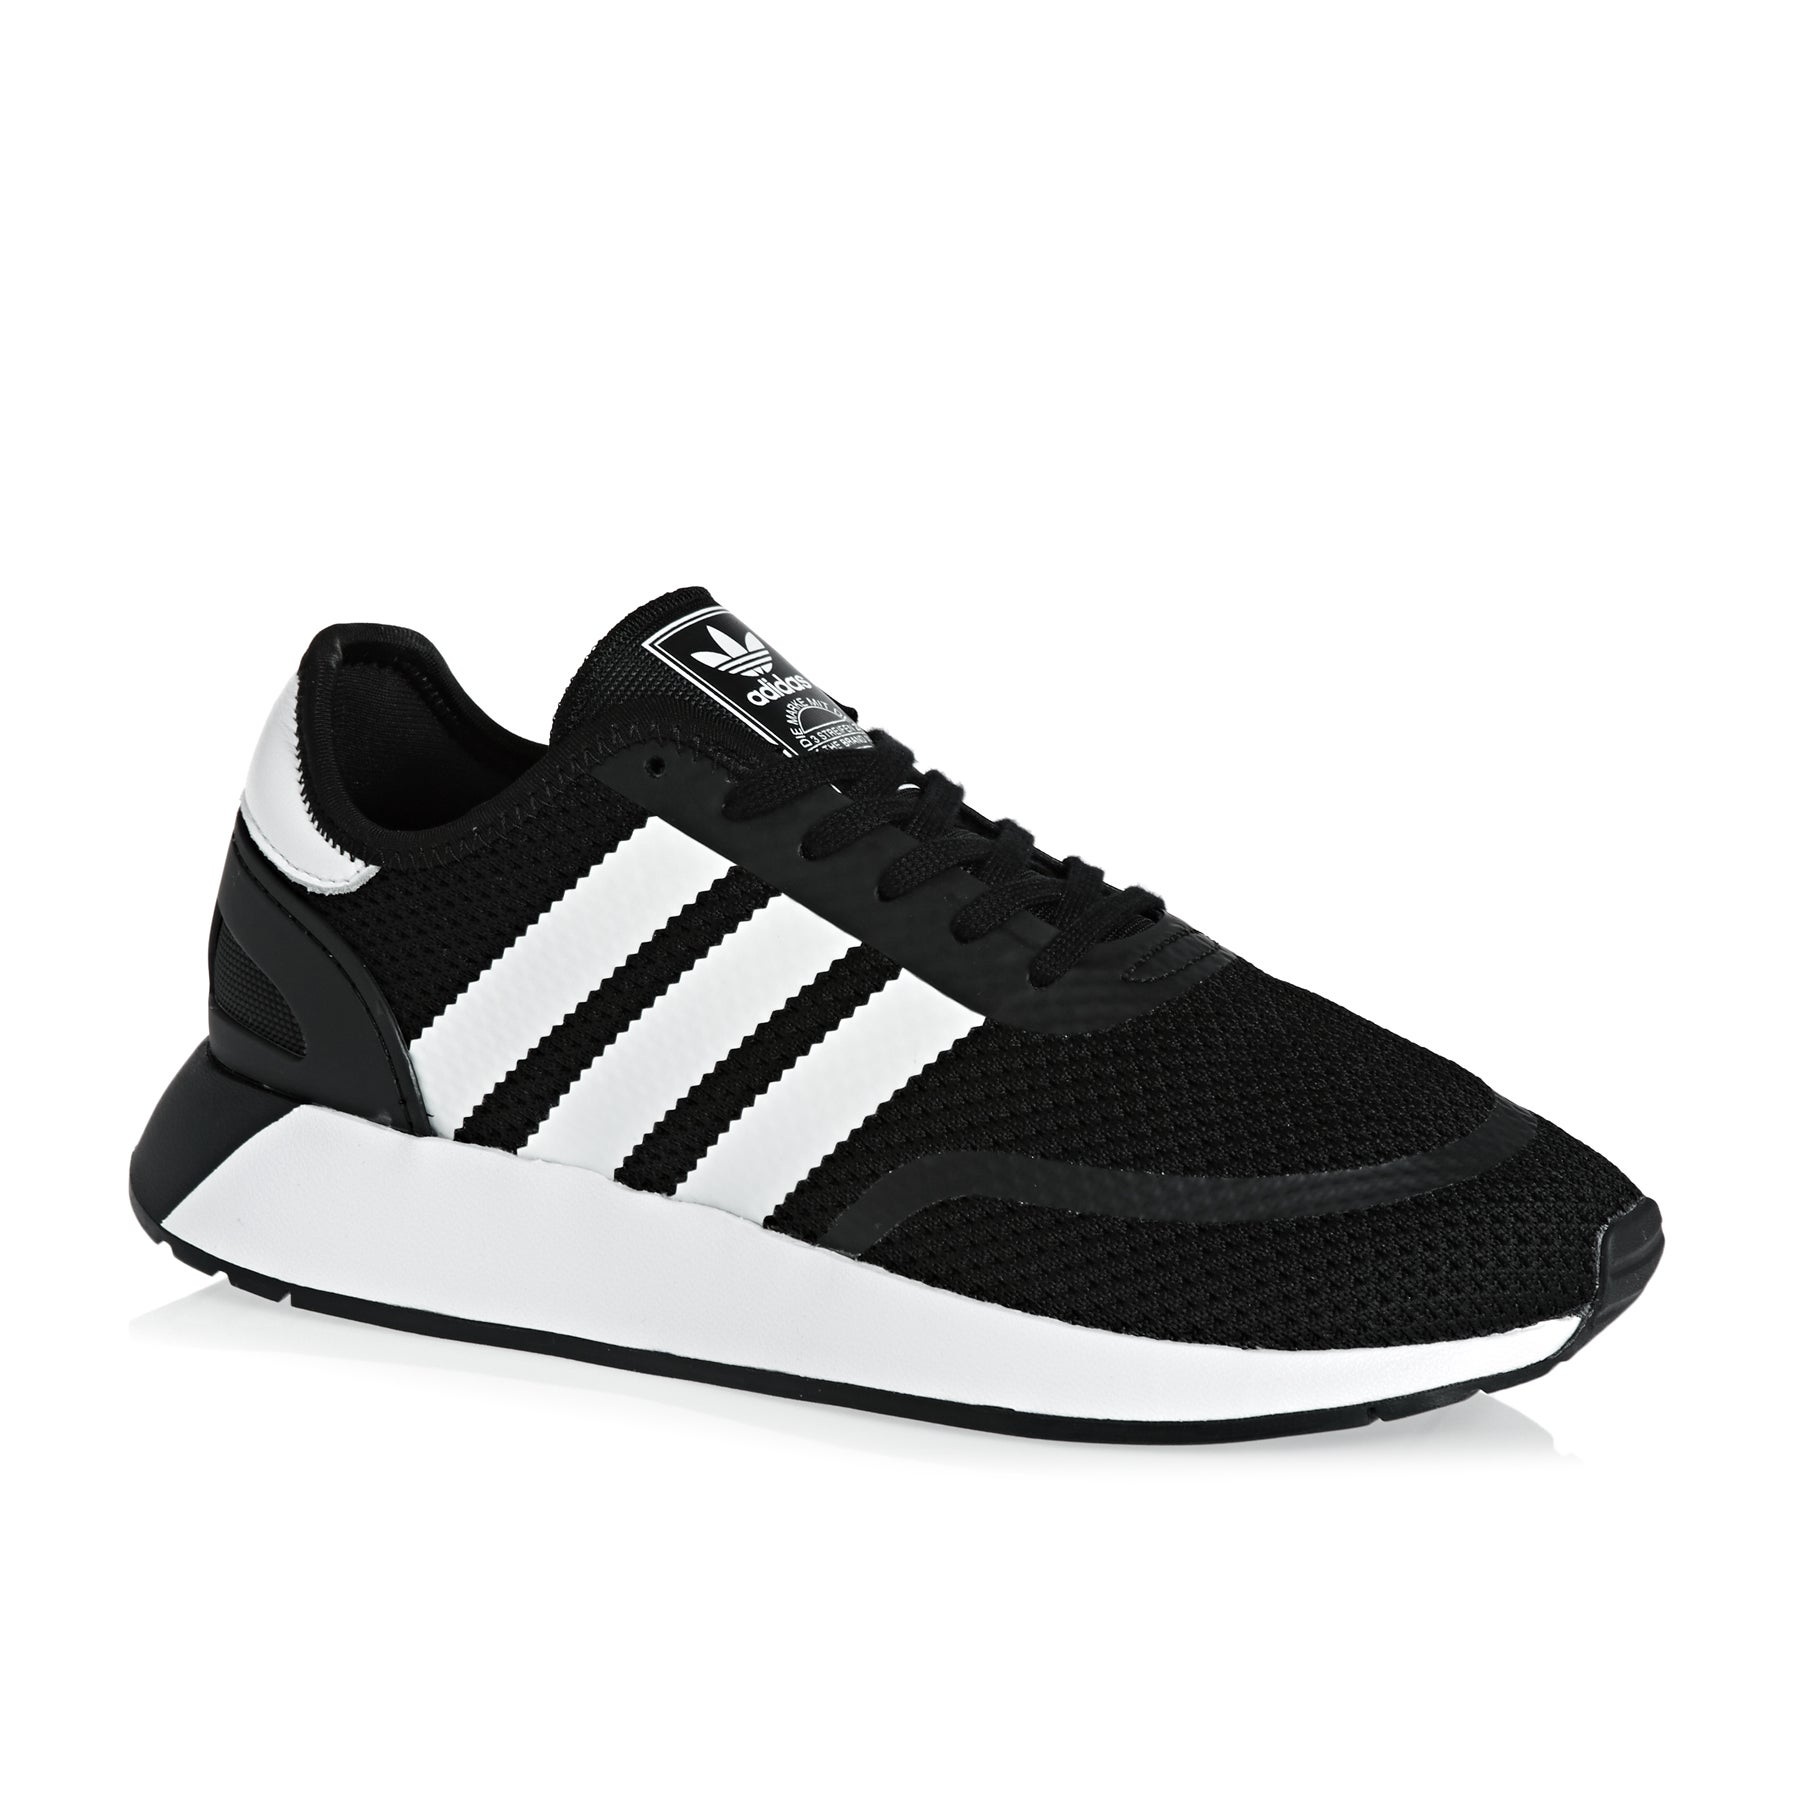 b620f0d3163 Adidas Originals N-5923 Shoes available from Surfdome